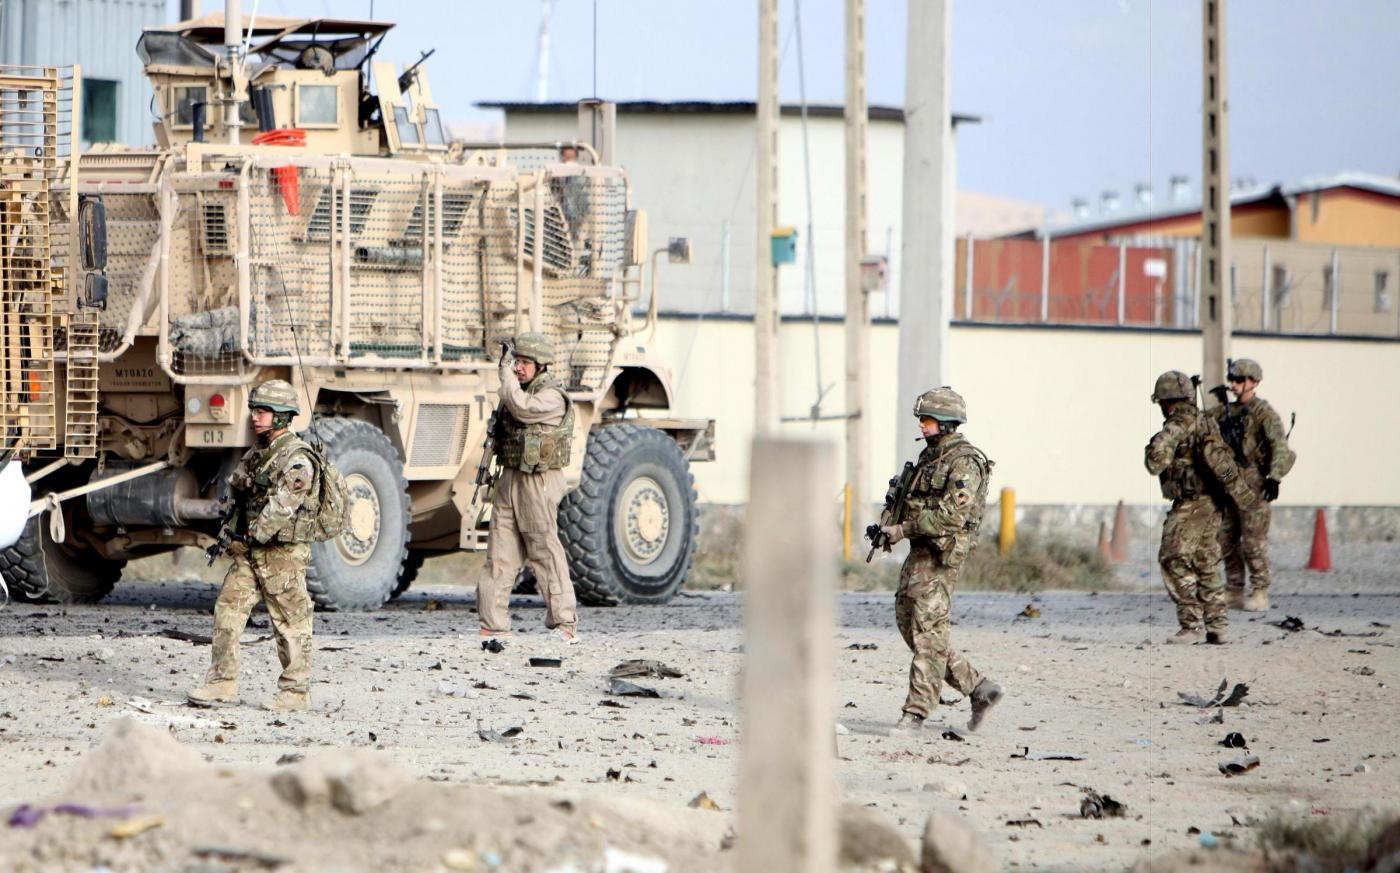 (141013) -- KABUL, Oct. 13, 2014 (Xinhua) -- U.S. soldiers keep watch at the site of a suicide car bombing targeting a military convoy of the NATO-led troops in Kabul, Afghanistan, on Oct. 13, 2014. (Xinhua/Ahmad Massoud)